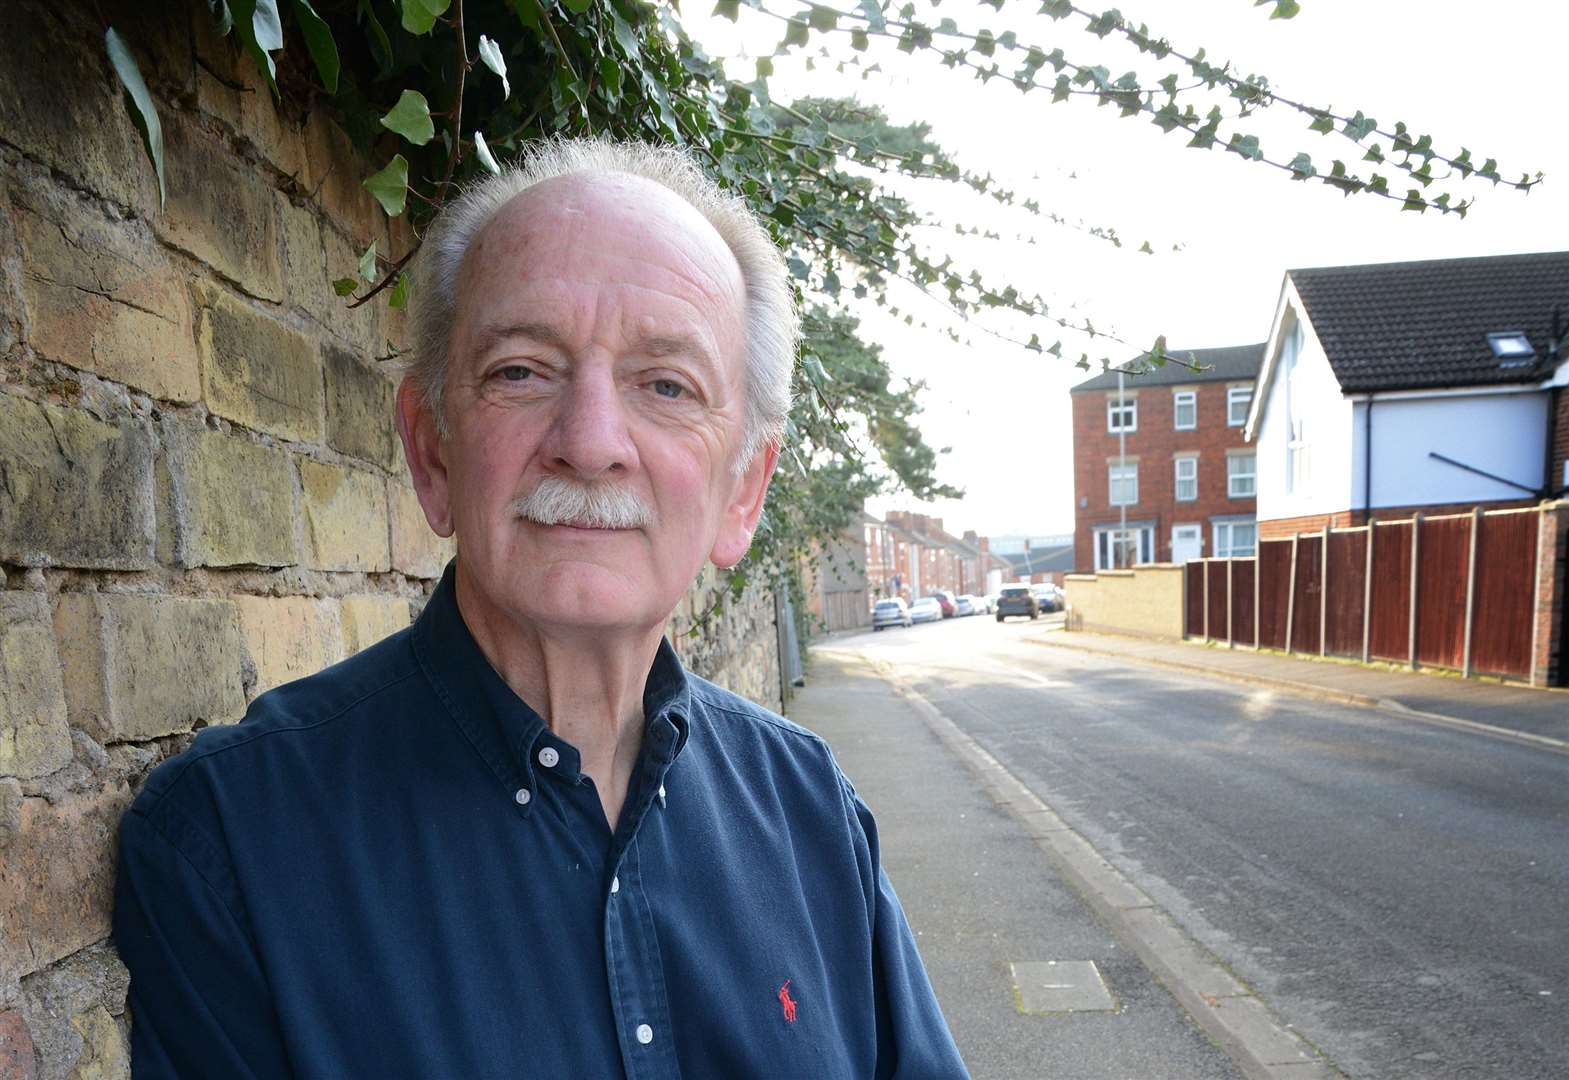 Grantham man sets up petition to stop cyclists on pavements